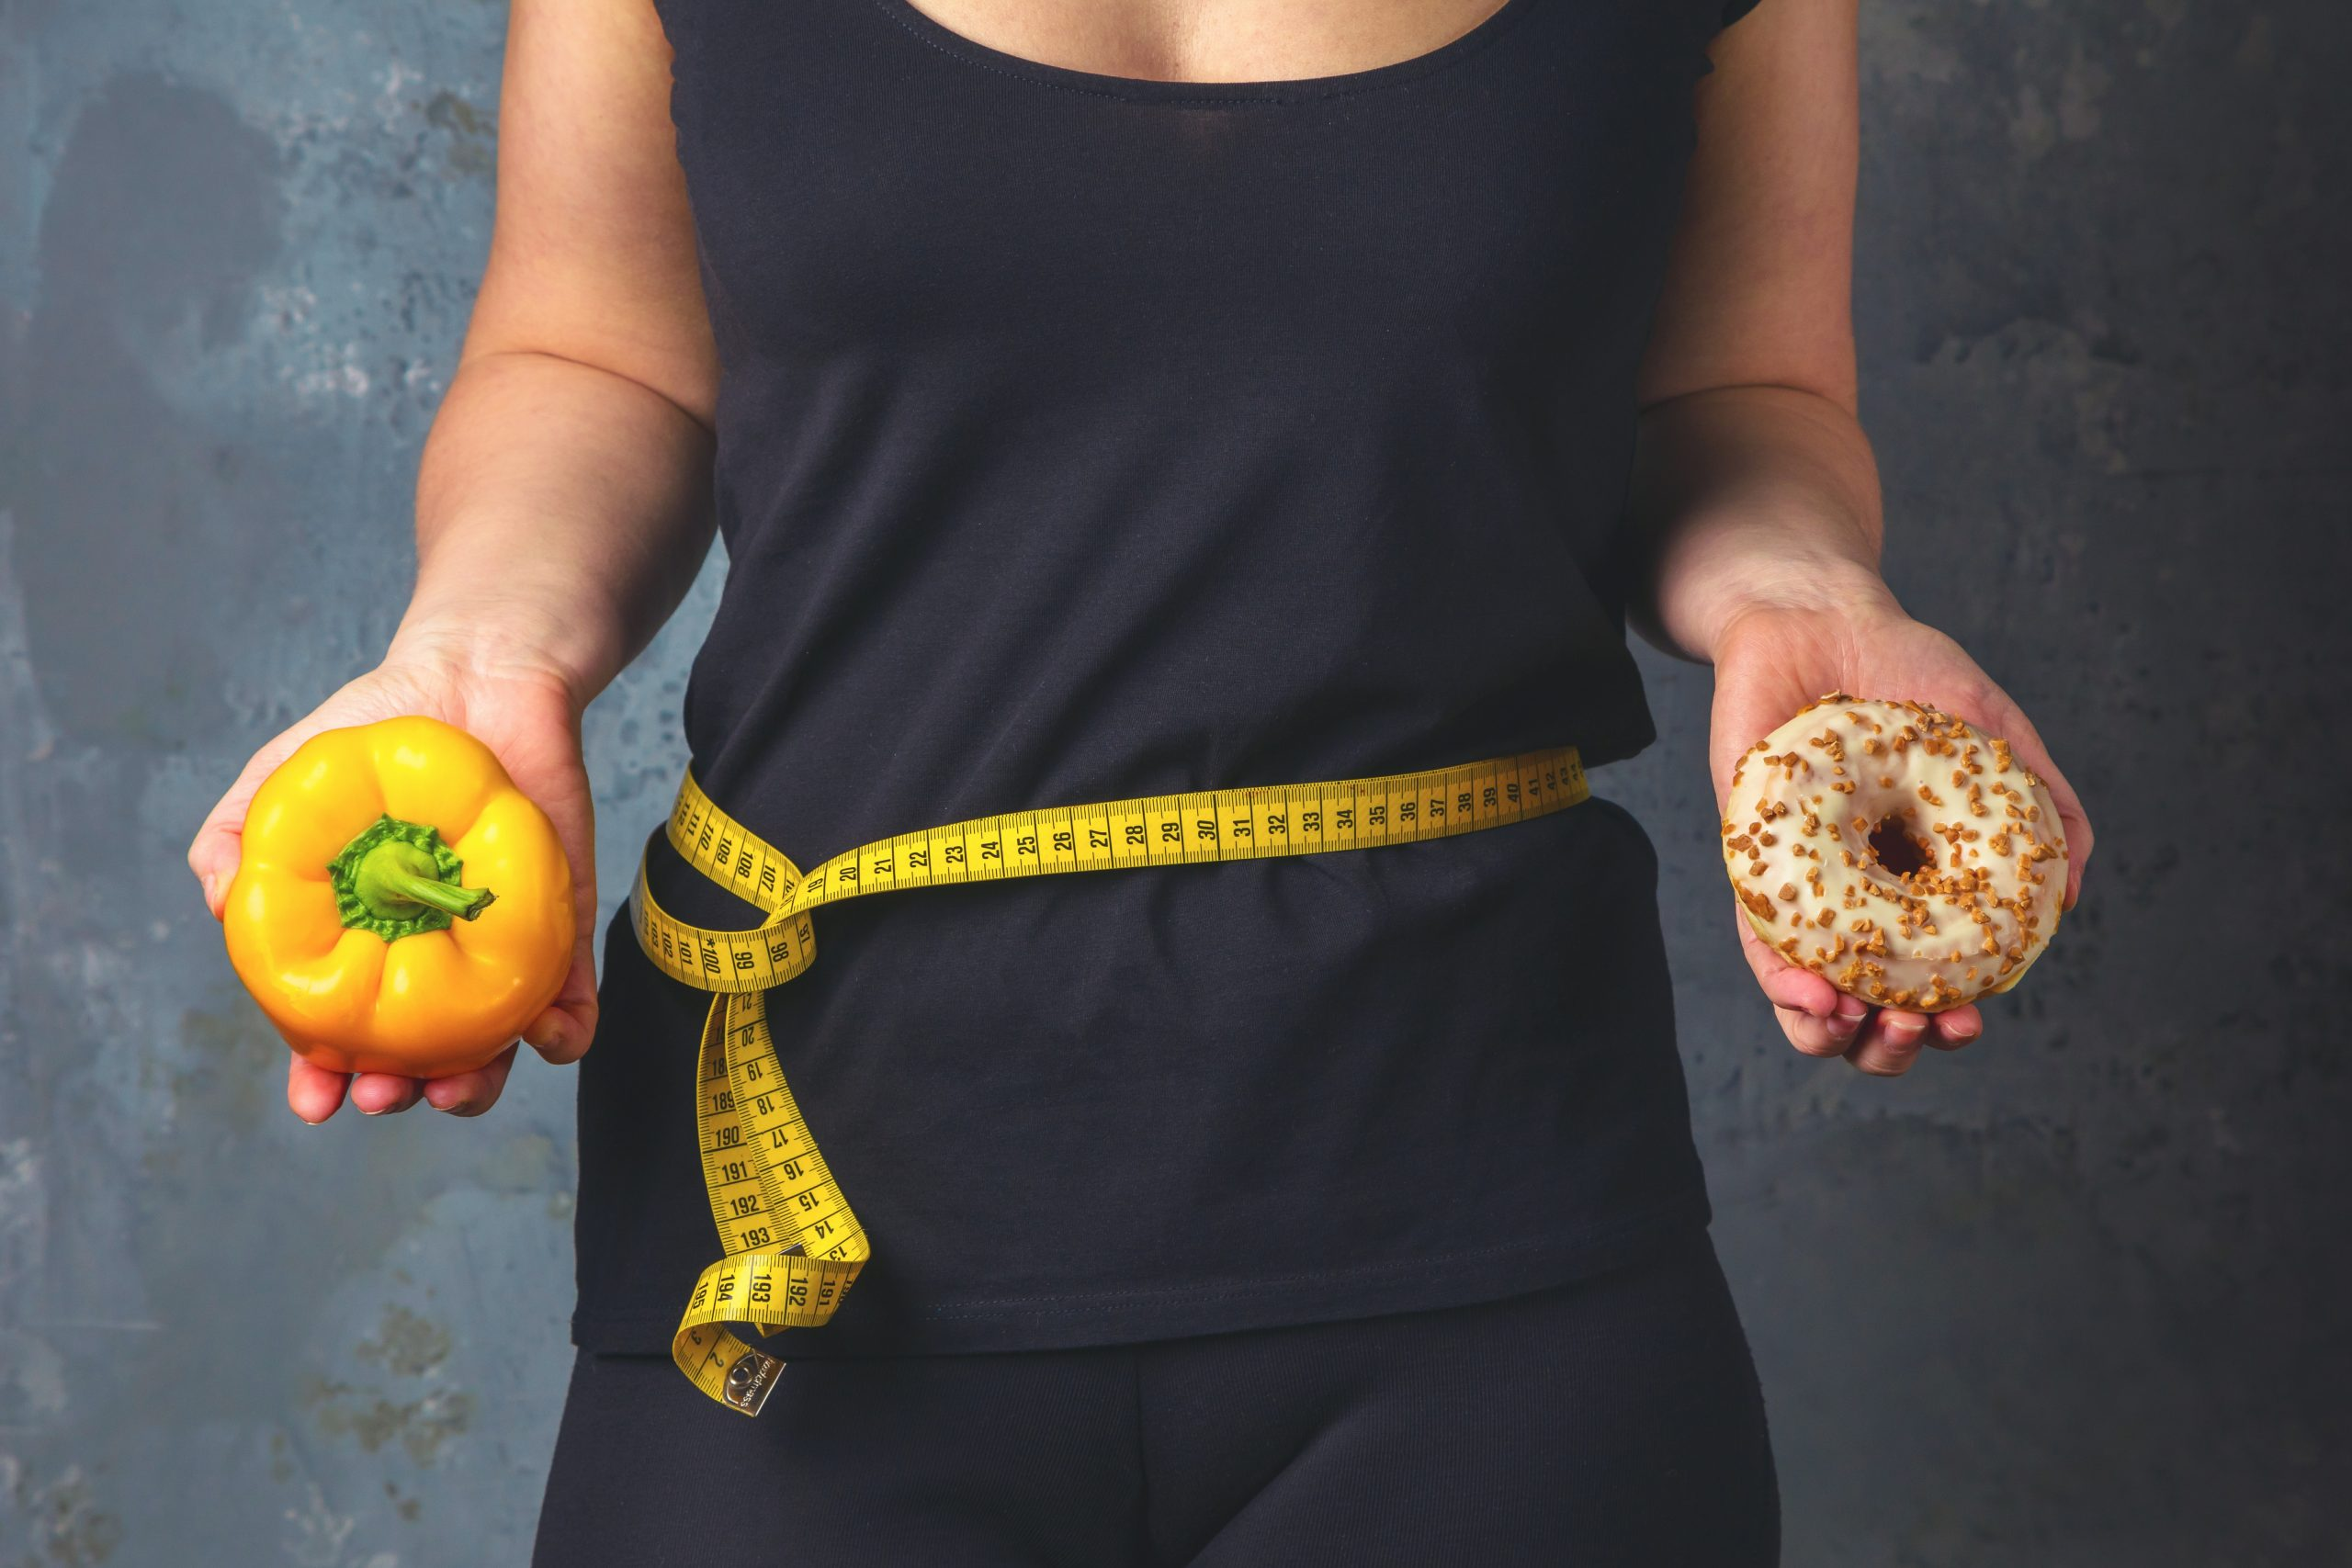 The Negative Effects of Yo-Yo Dieting and Crash Diets